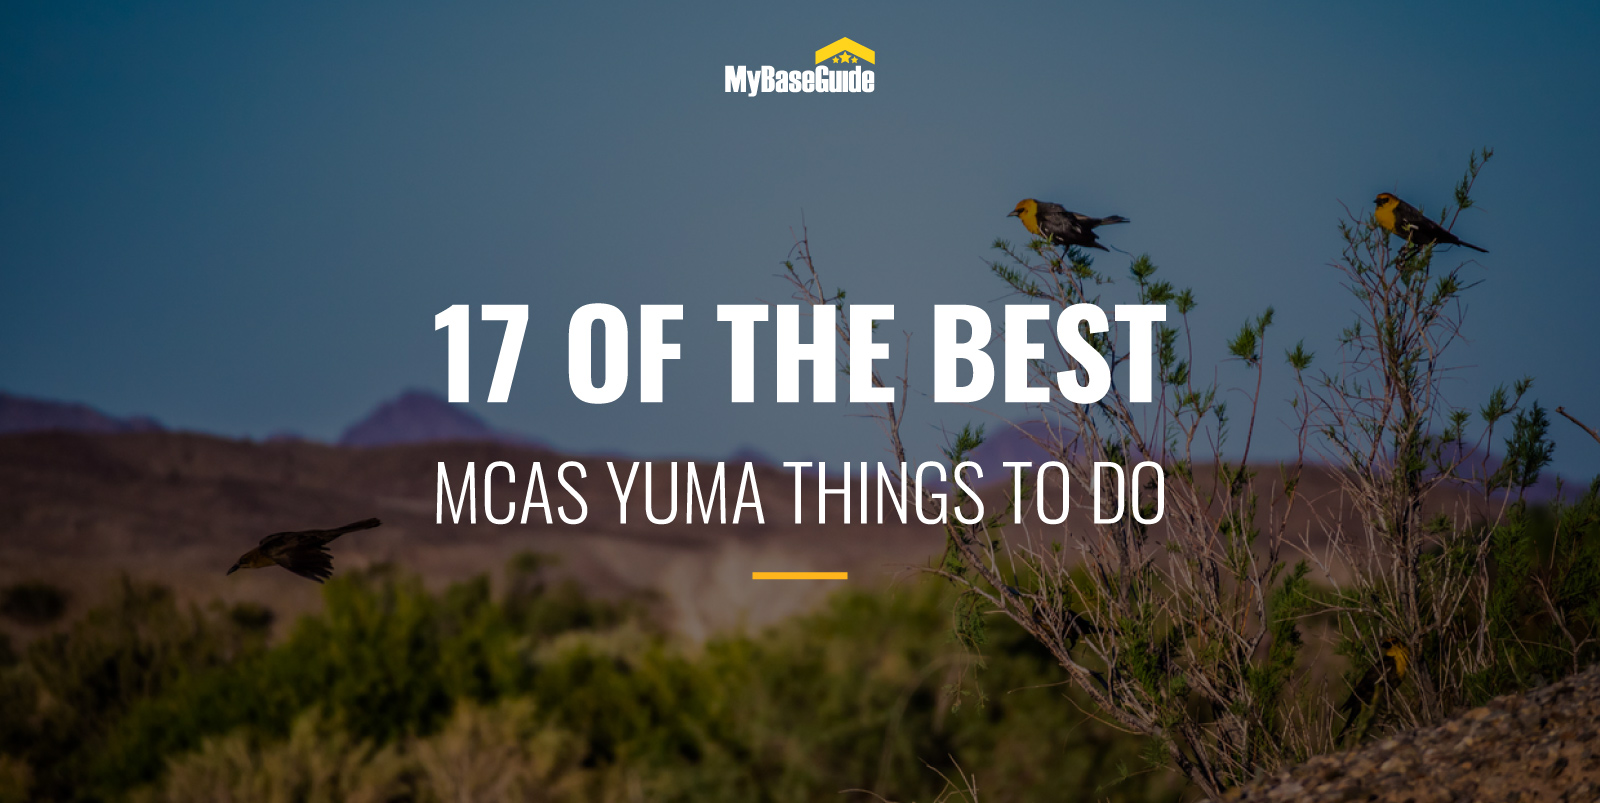 17 Of the Best MCAS Yuma Things to Do